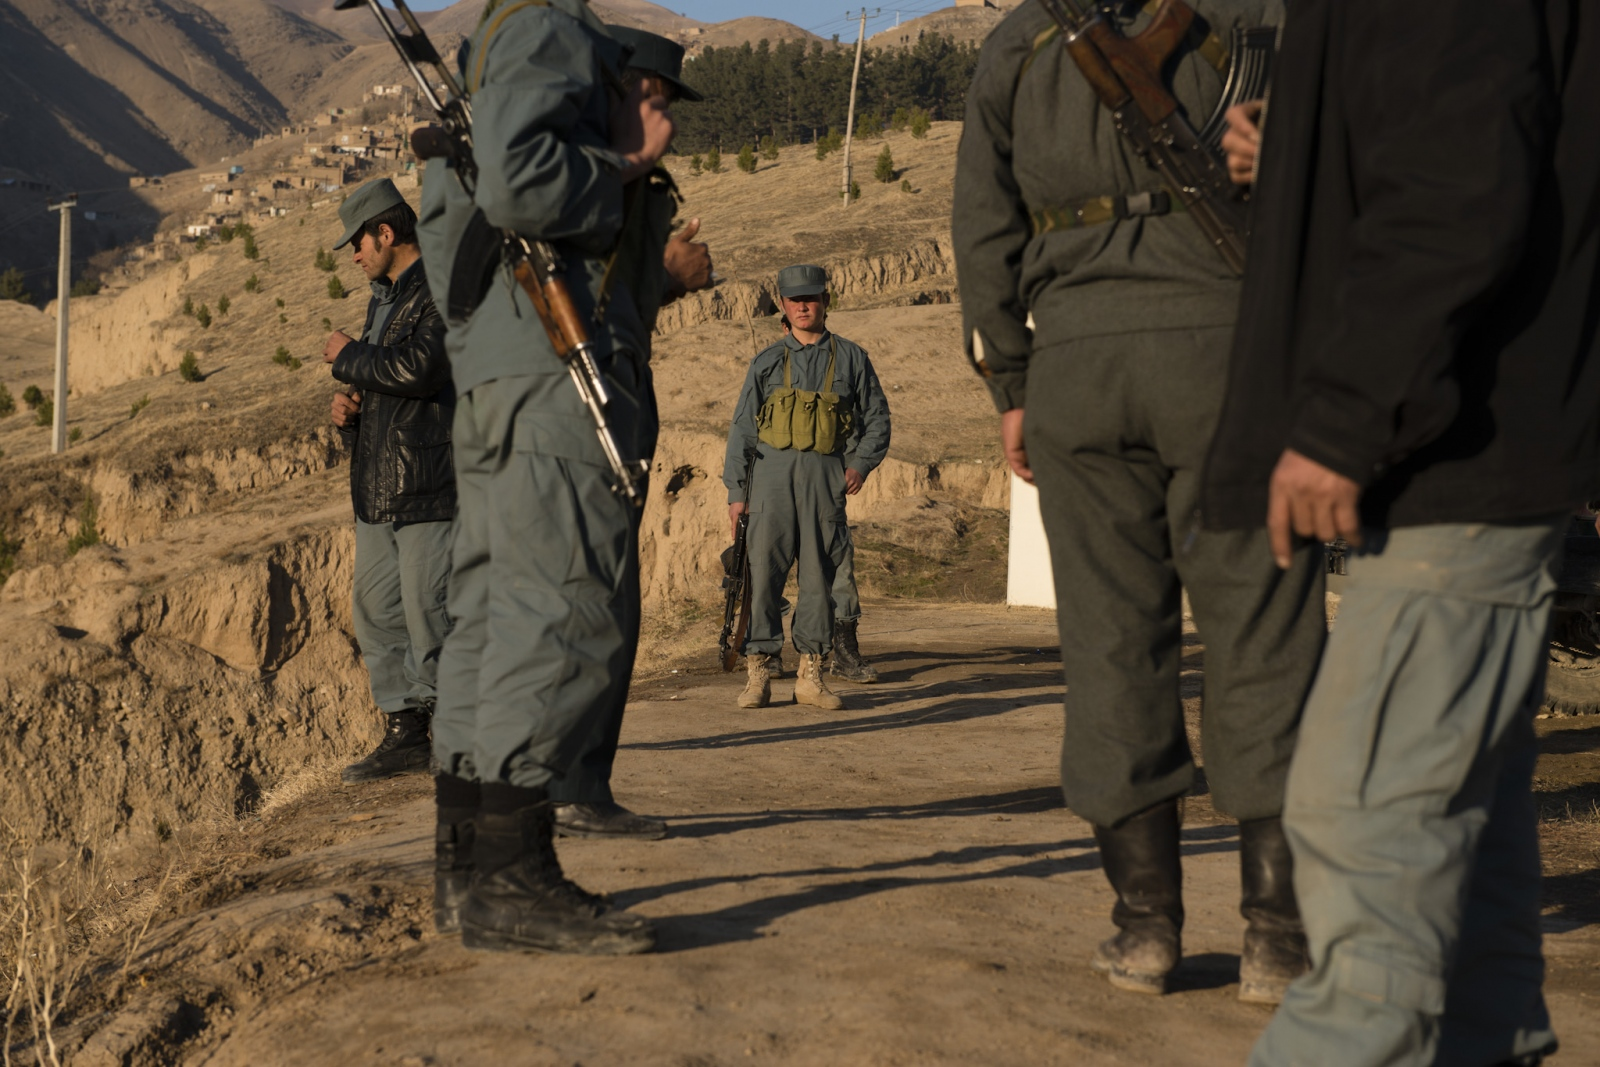 FAIZABAD, AFGHANISTAN | 2014-12-14 | At a police outpost just outside of the town of faizabad, a young policemen, highly suspected to be a minor, is seen on patrol, watching the city from the top of the hill. In the past 2 months, 24 members of AFP (Afghan Police Force) had been kidnapped by Taliban.